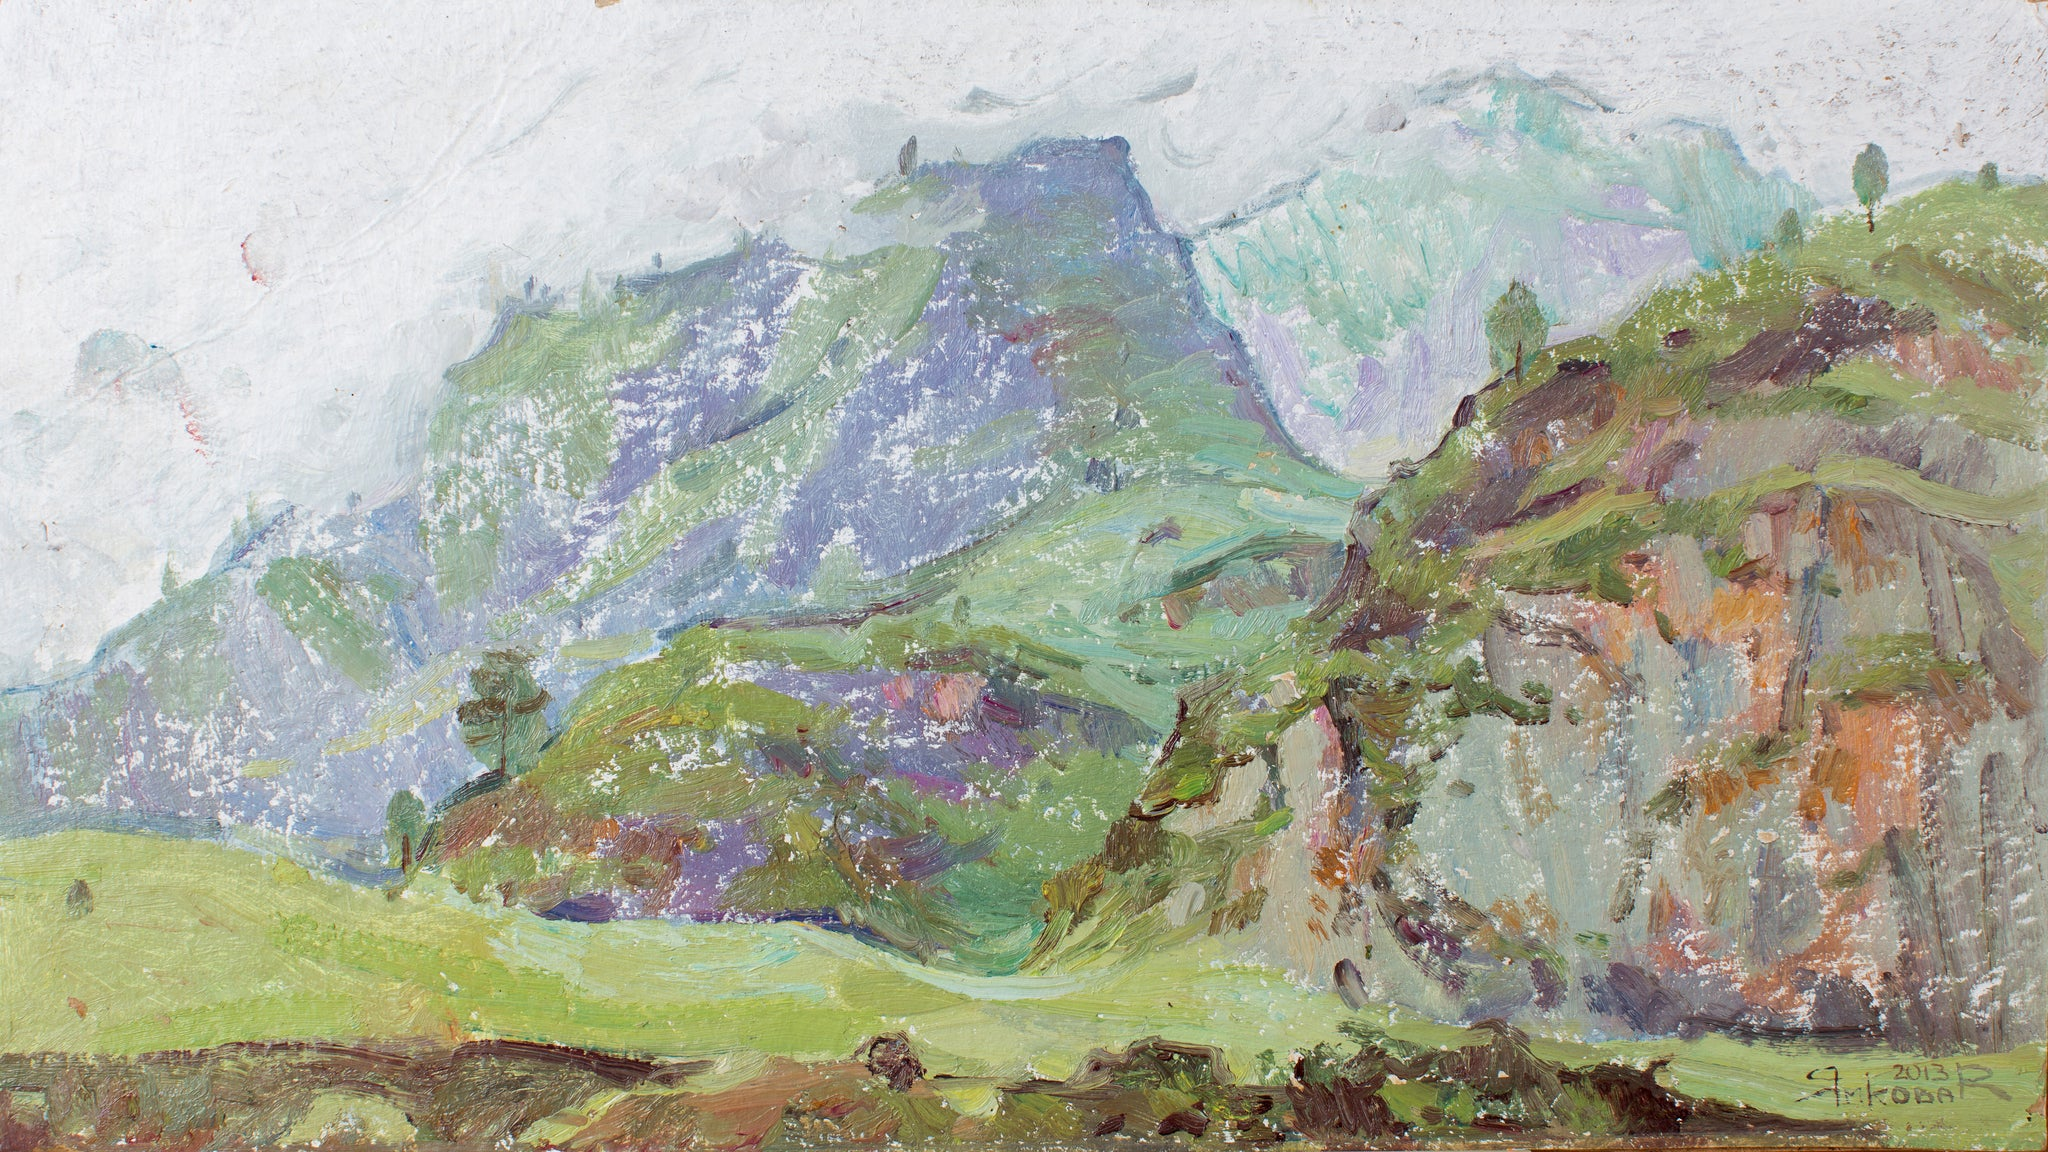 Breath of mountains by Natalia Plohih (Yamkova), 27cm*48cm, oil painting